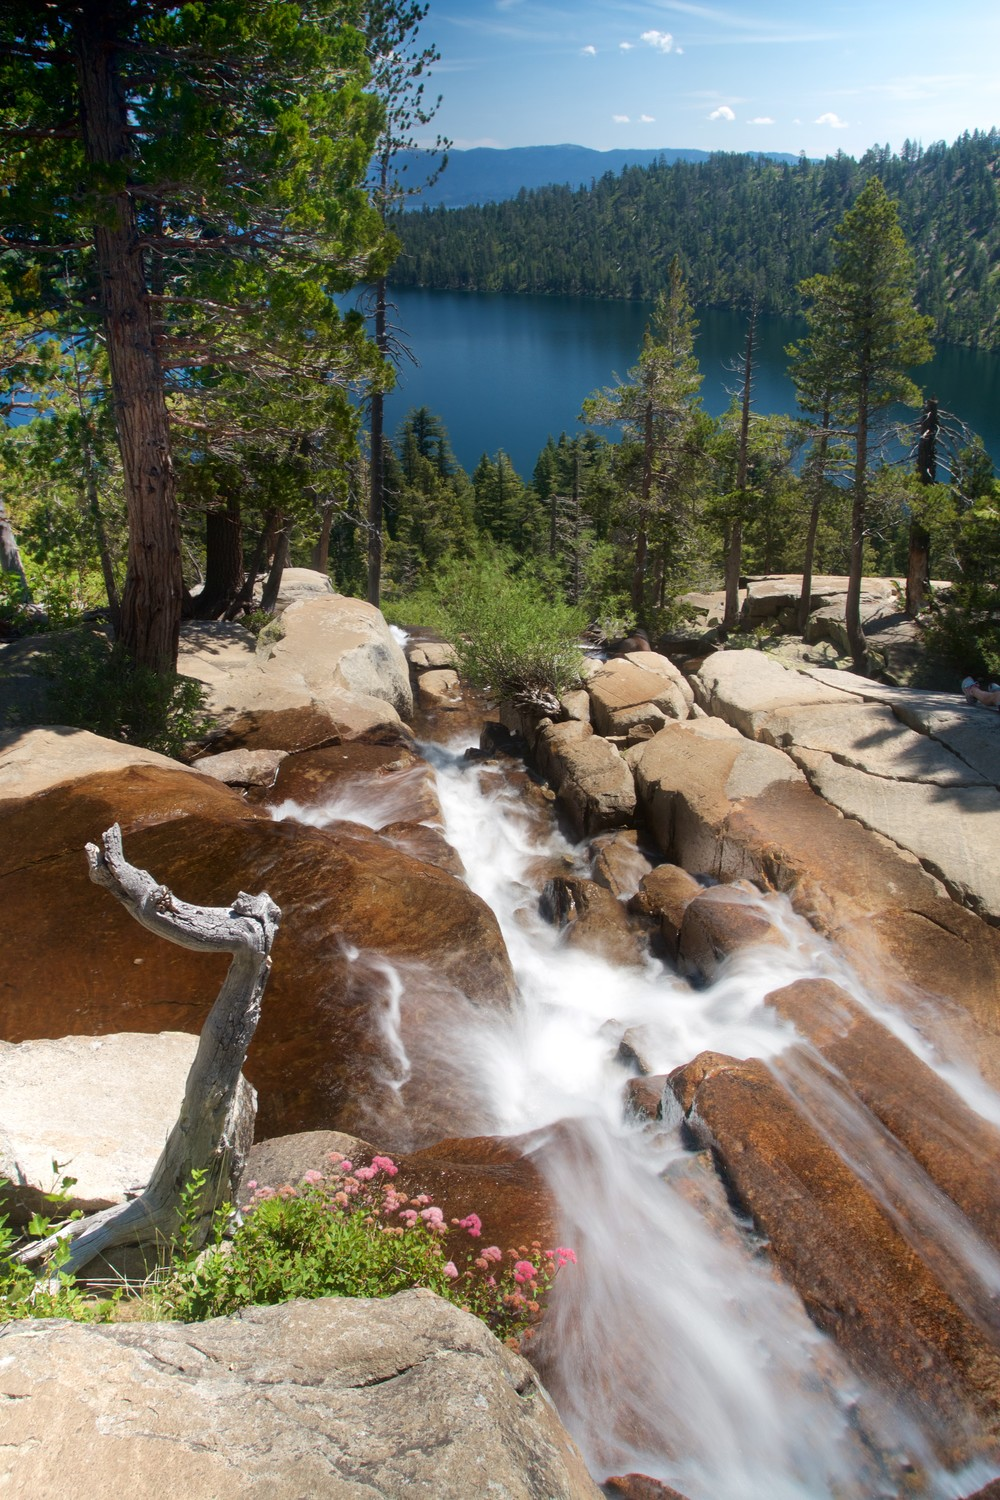 View from Cascade Falls over Cascade Lake and Lake Tahoe. A roughly 1/2 second exposure at f/11 with my Canon 7D, 17-40L, and Neewar Vari-ND filter.